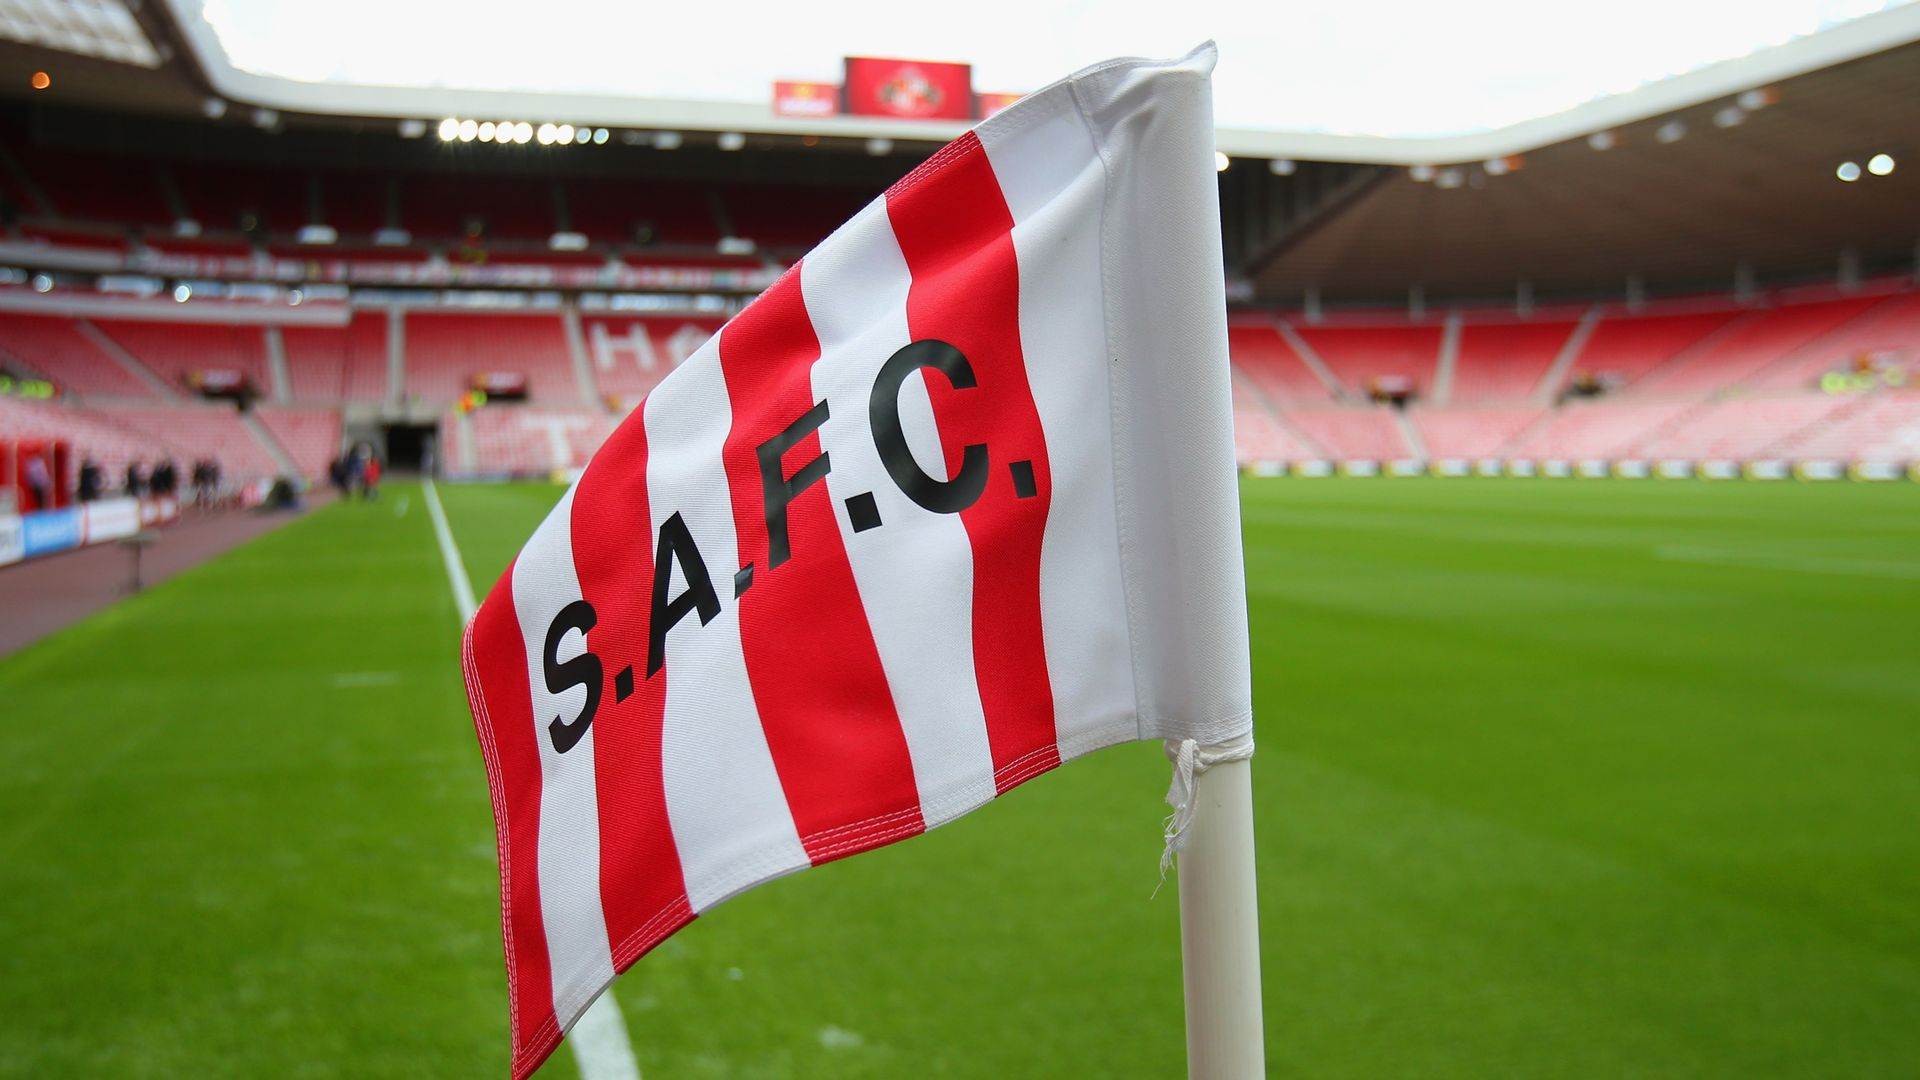 Sunderland: End L1 on pitch, not in court